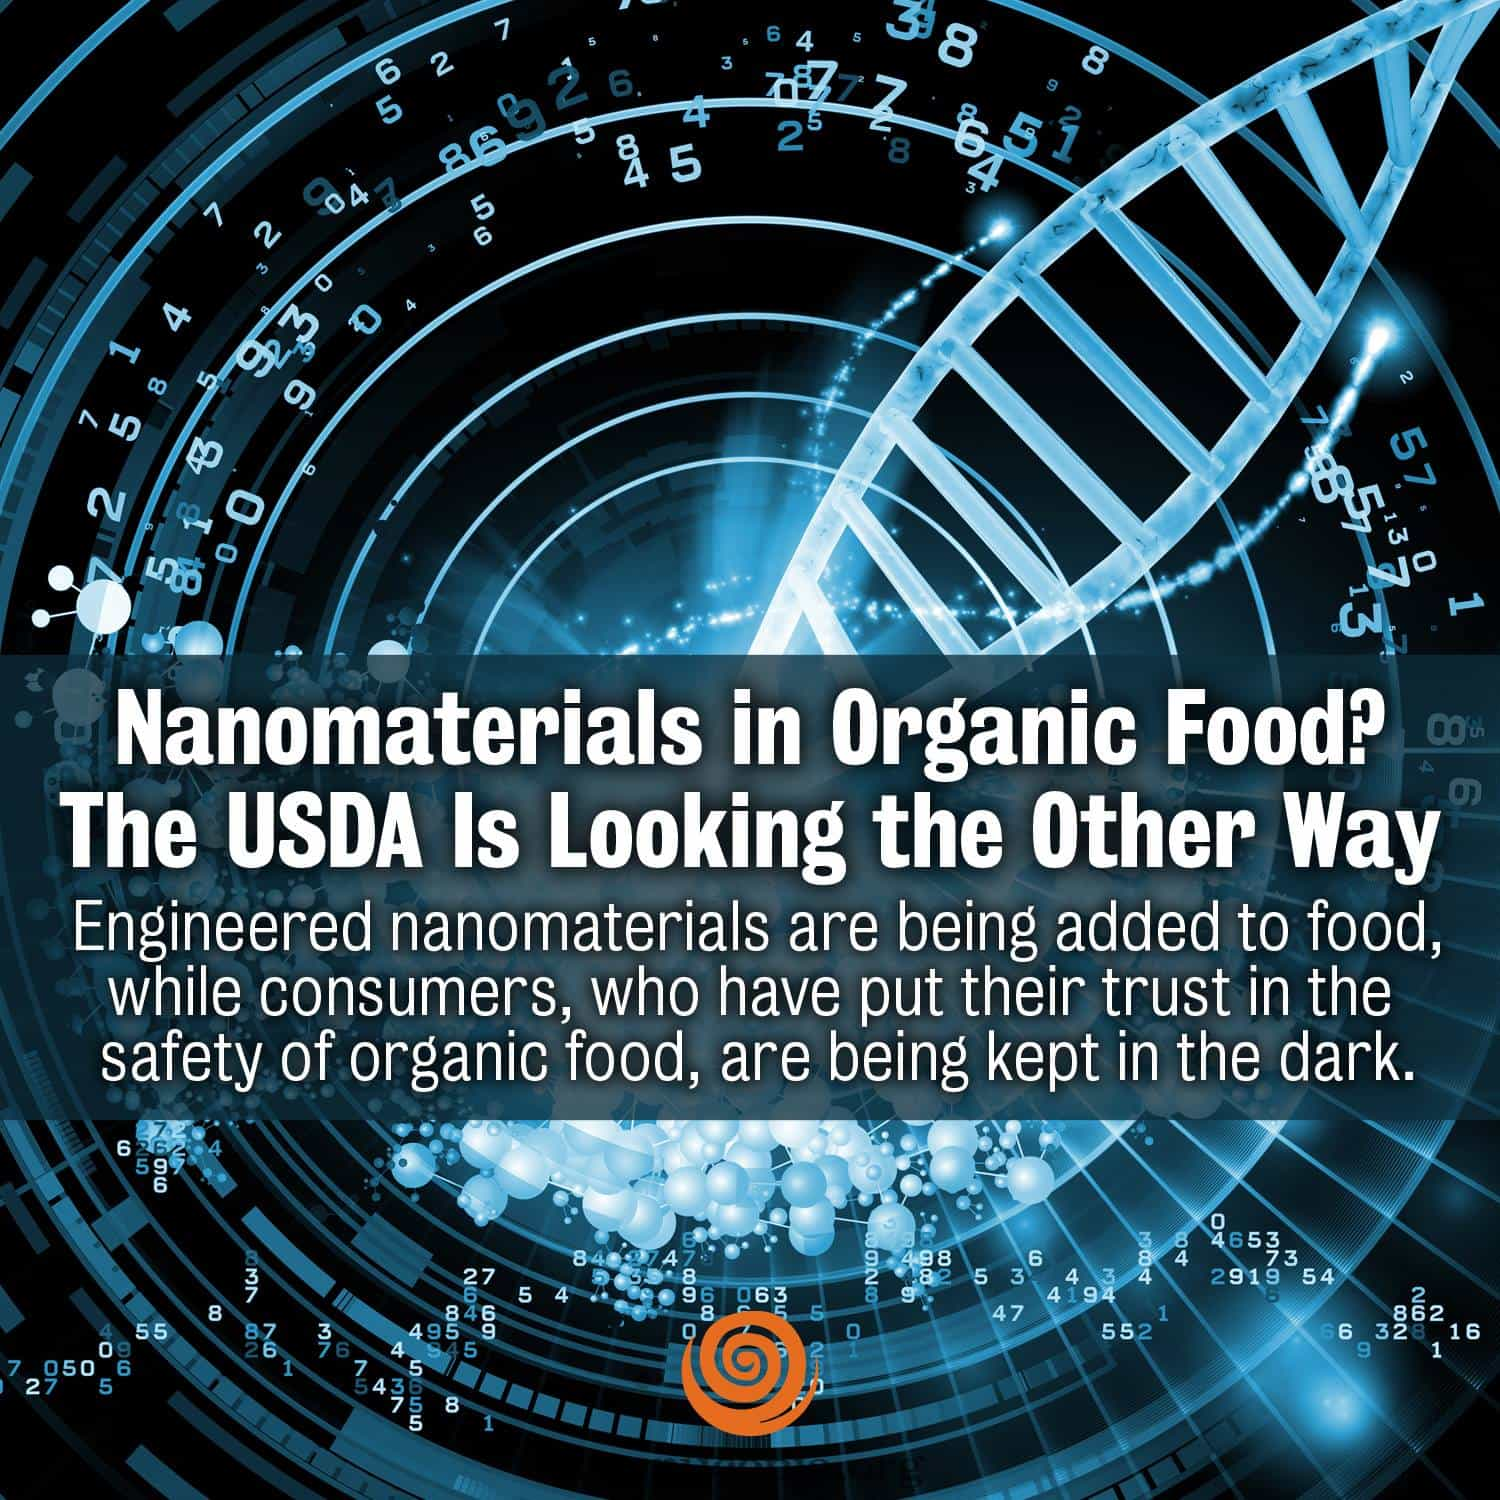 Nanomaterials in Organic Food? The USDA Is Looking the Other Way